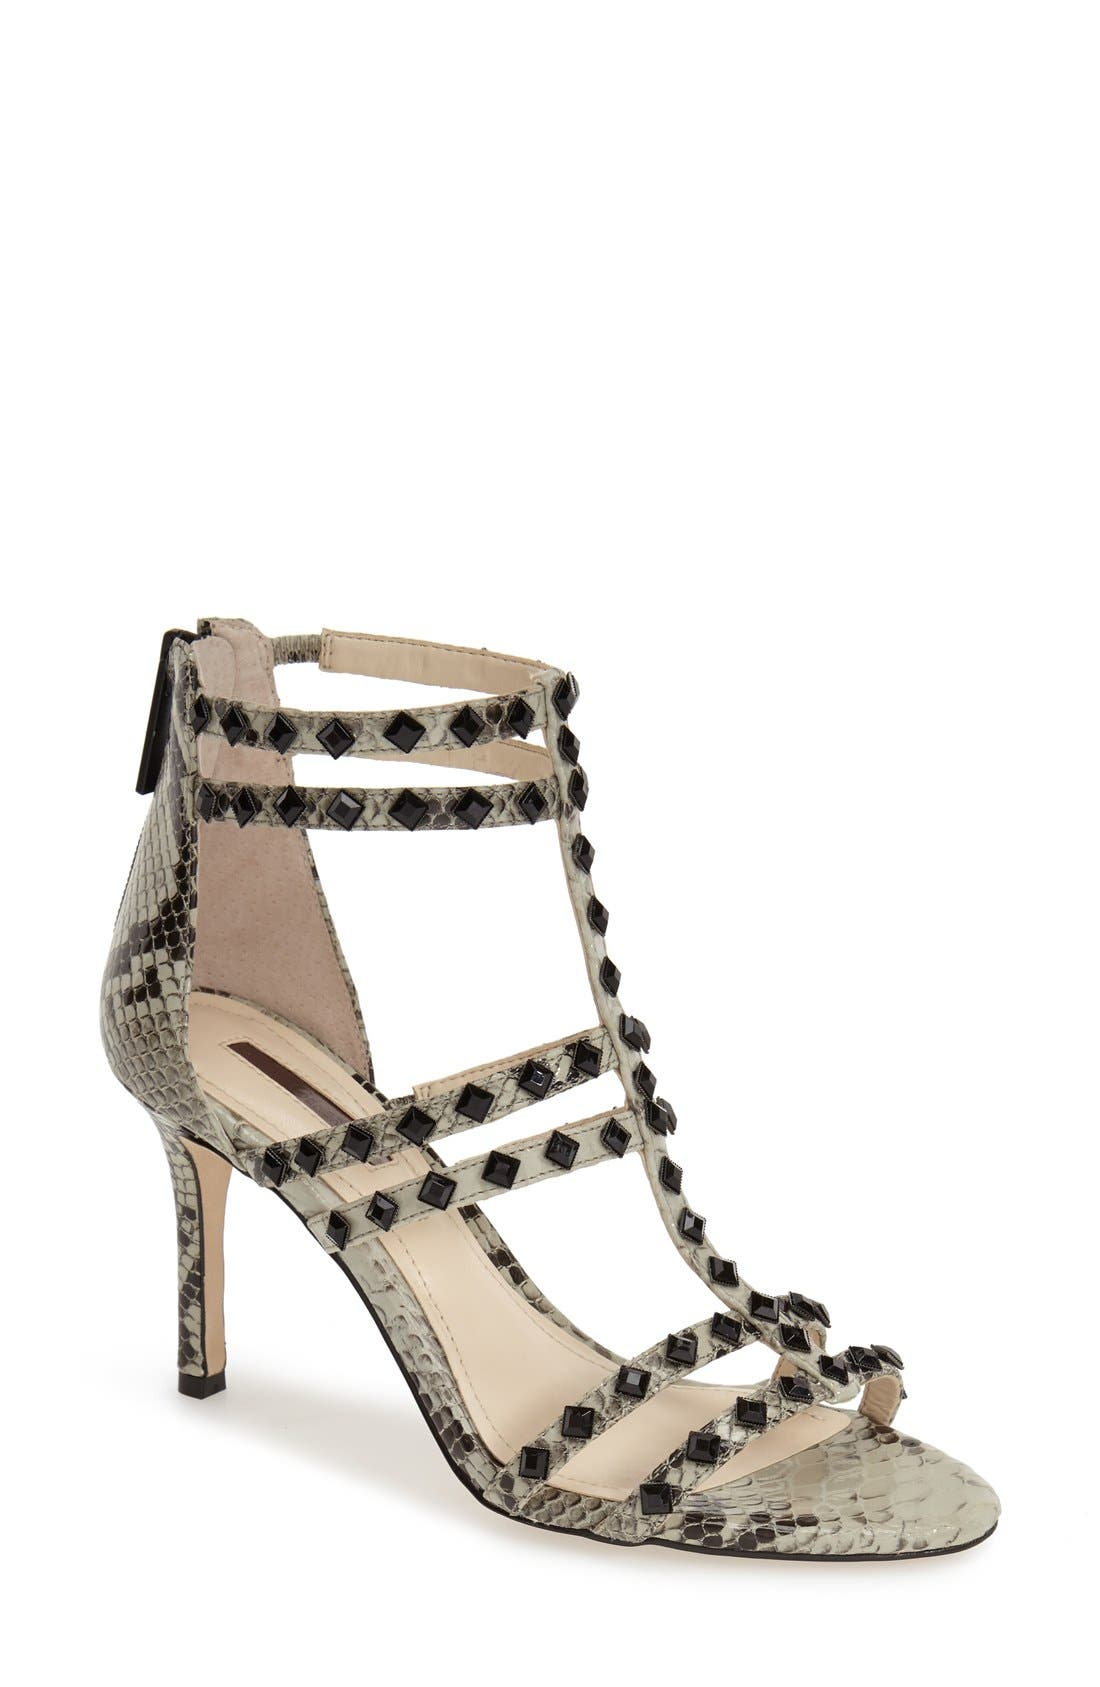 Alternate Image 1 Selected - BCBGeneration 'Dariah' Studded T-Strap Sandal (Women)